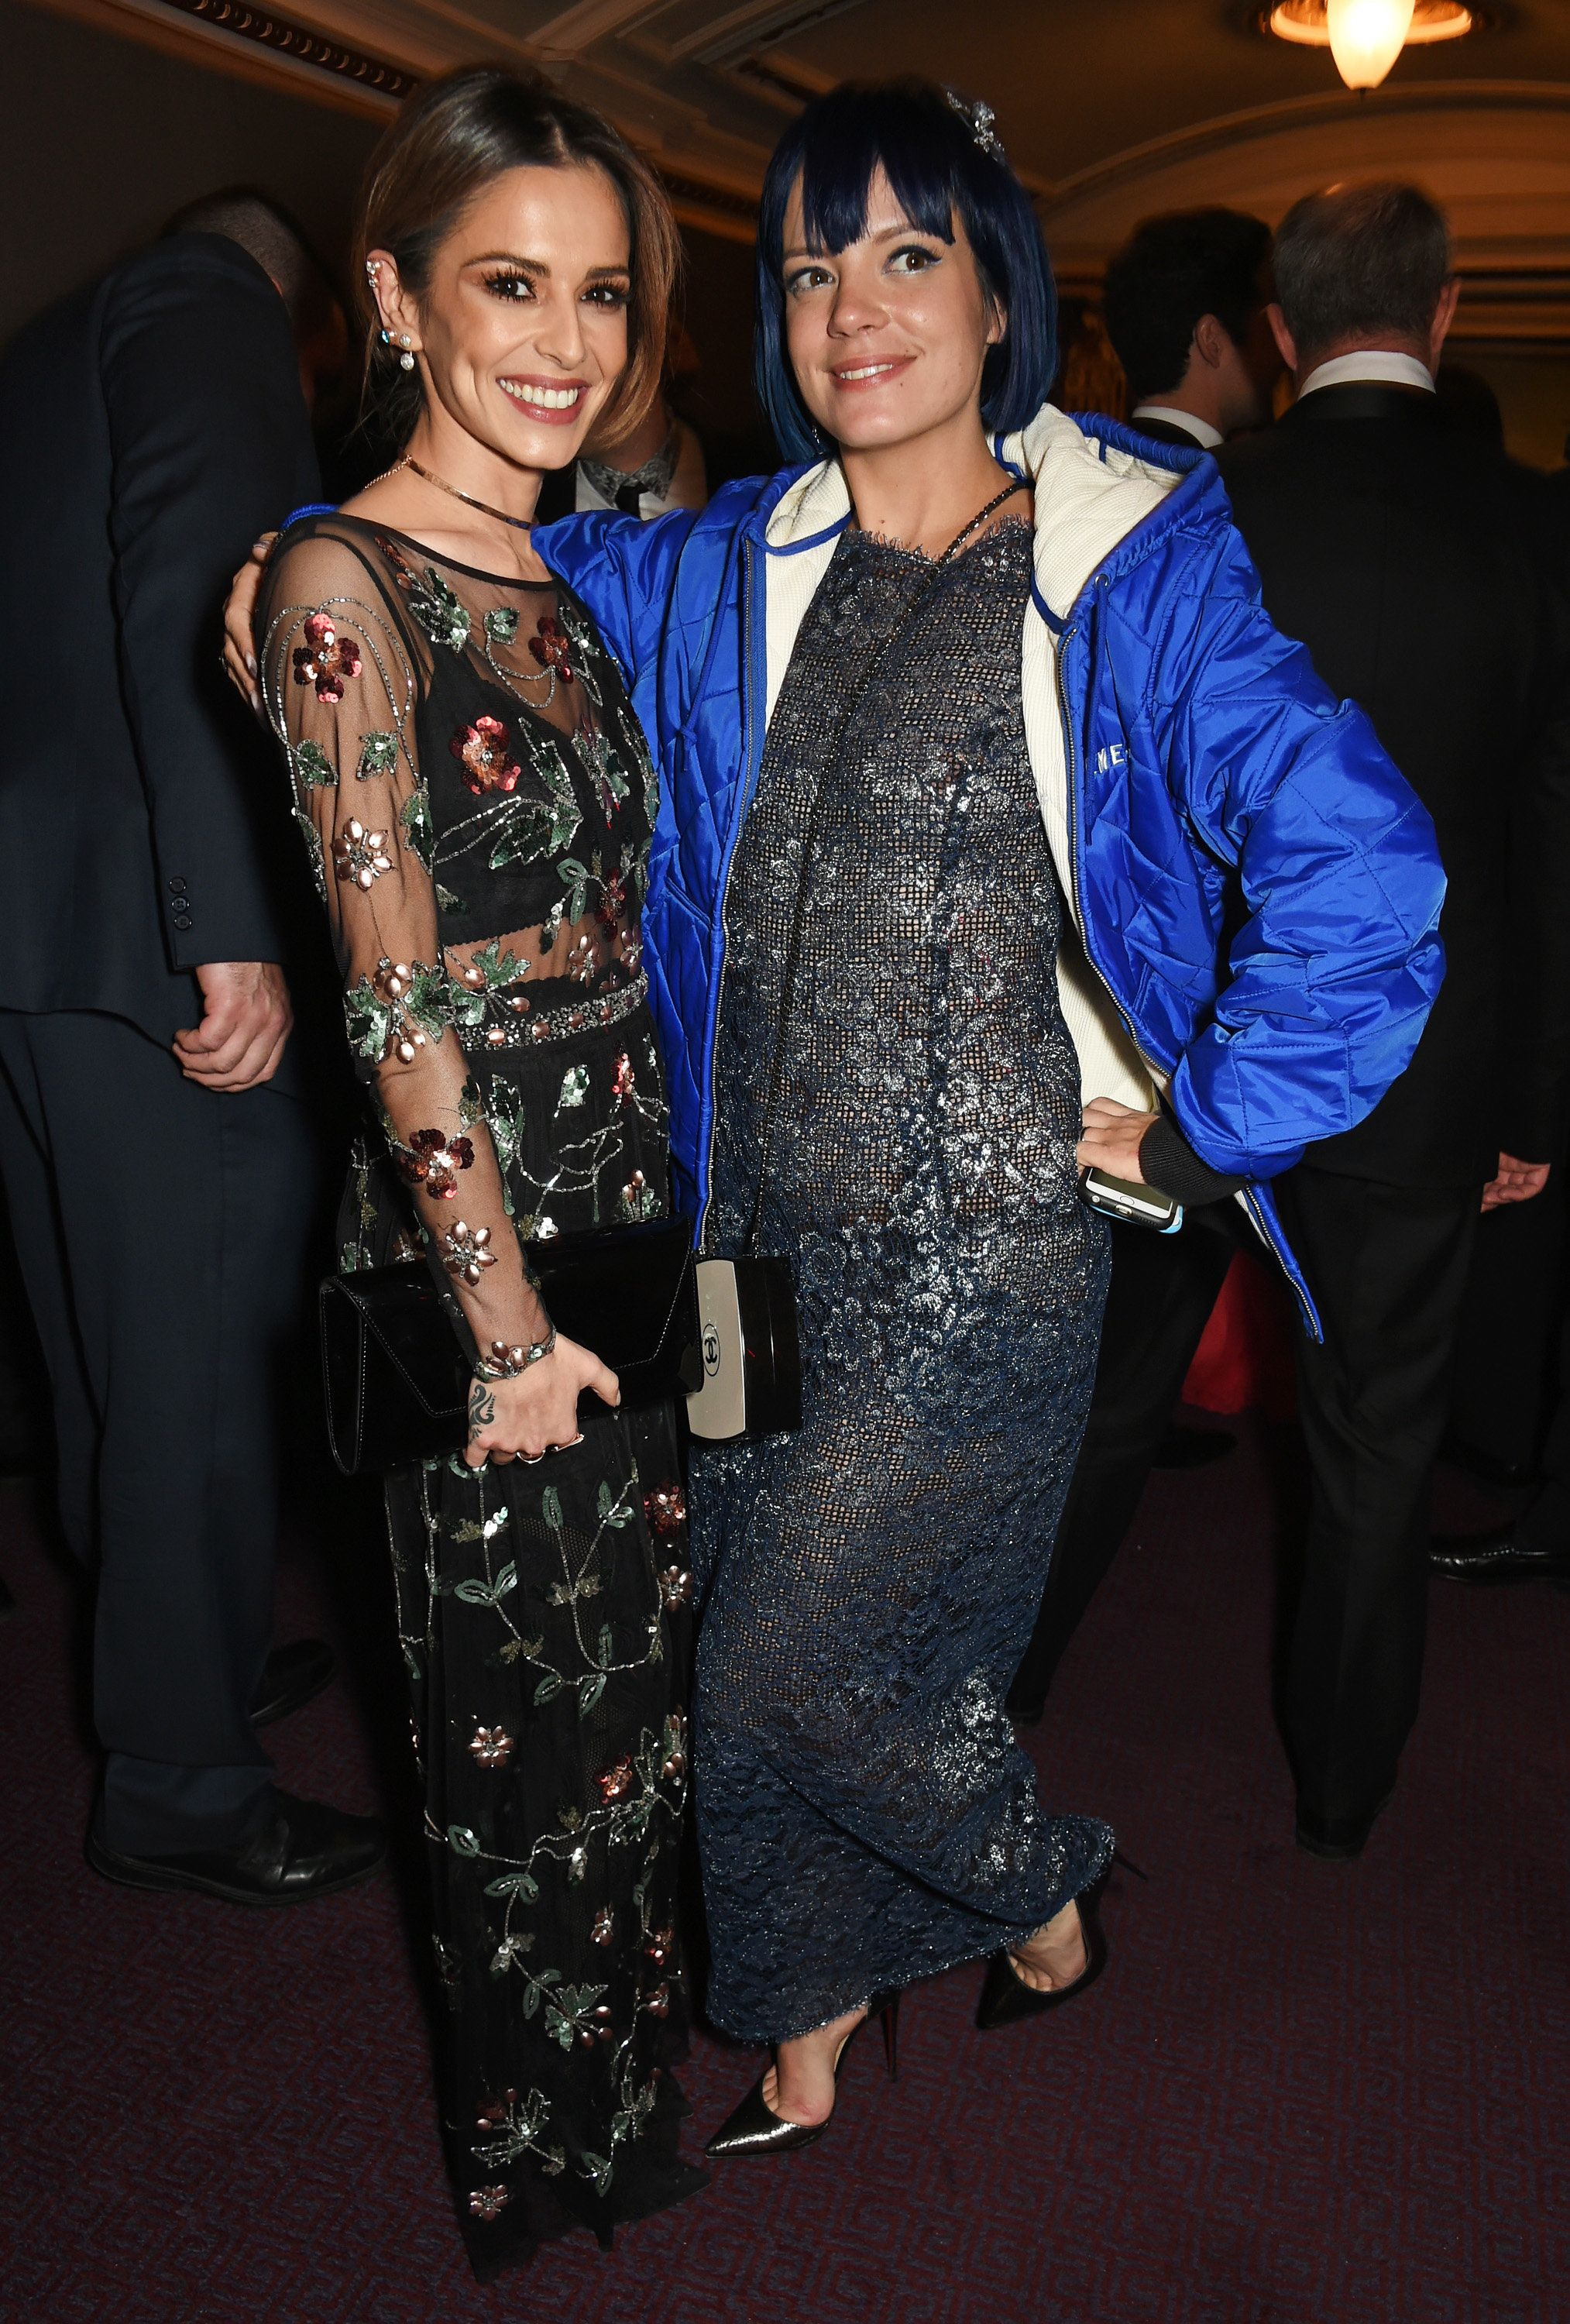 Cheryl and Lily Allen patched things up in 2015